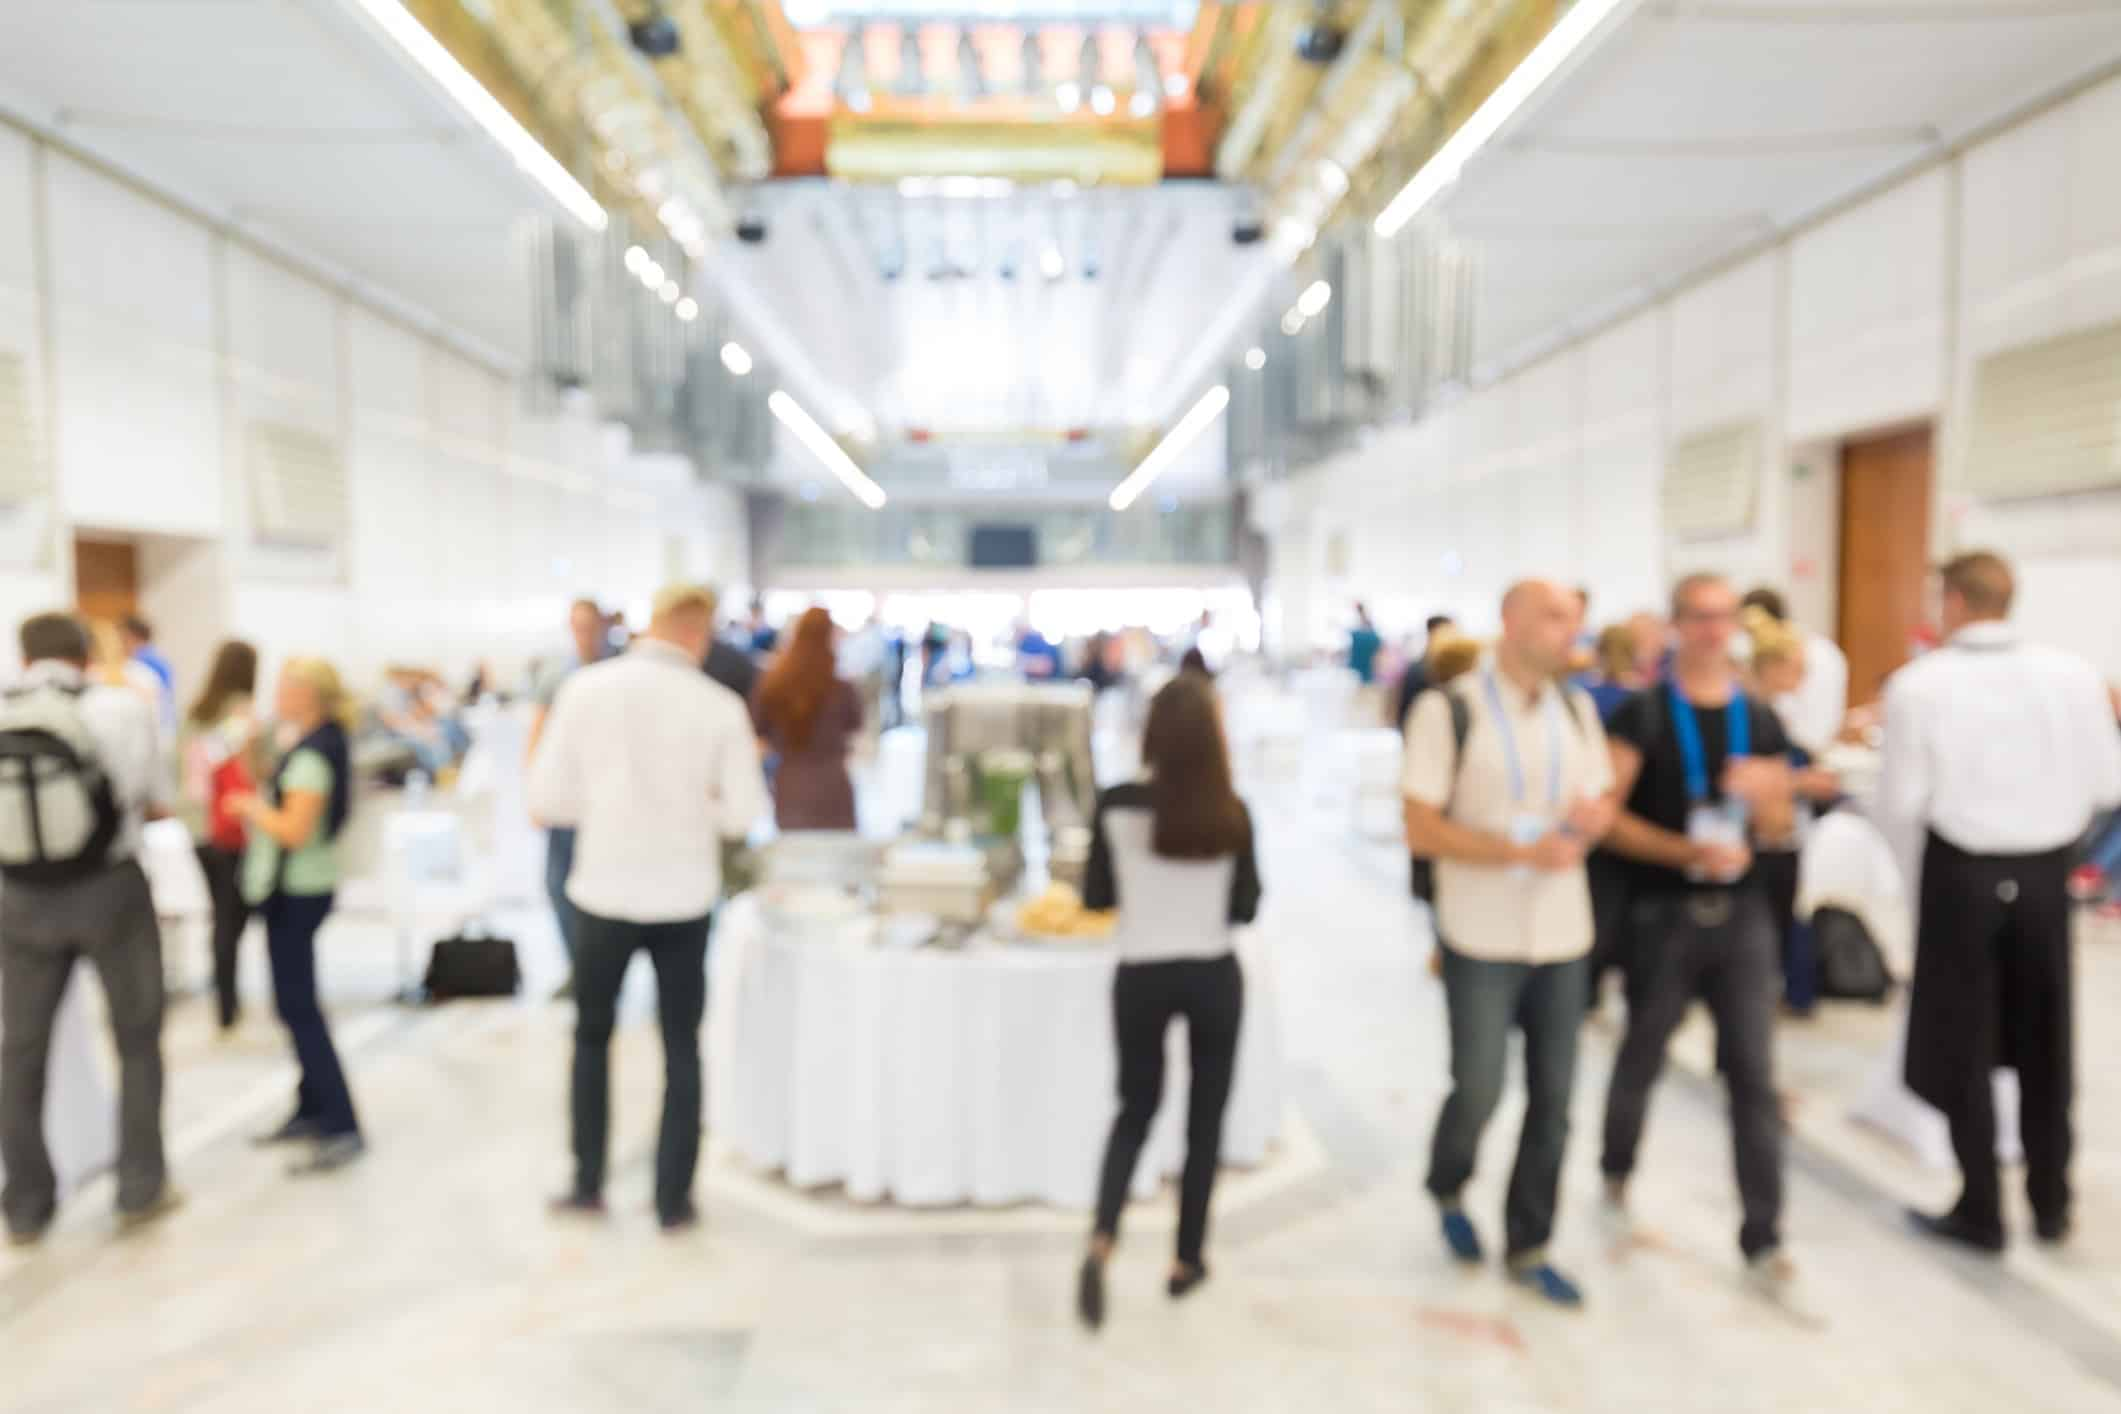 Attendee engagement at events and business meetings